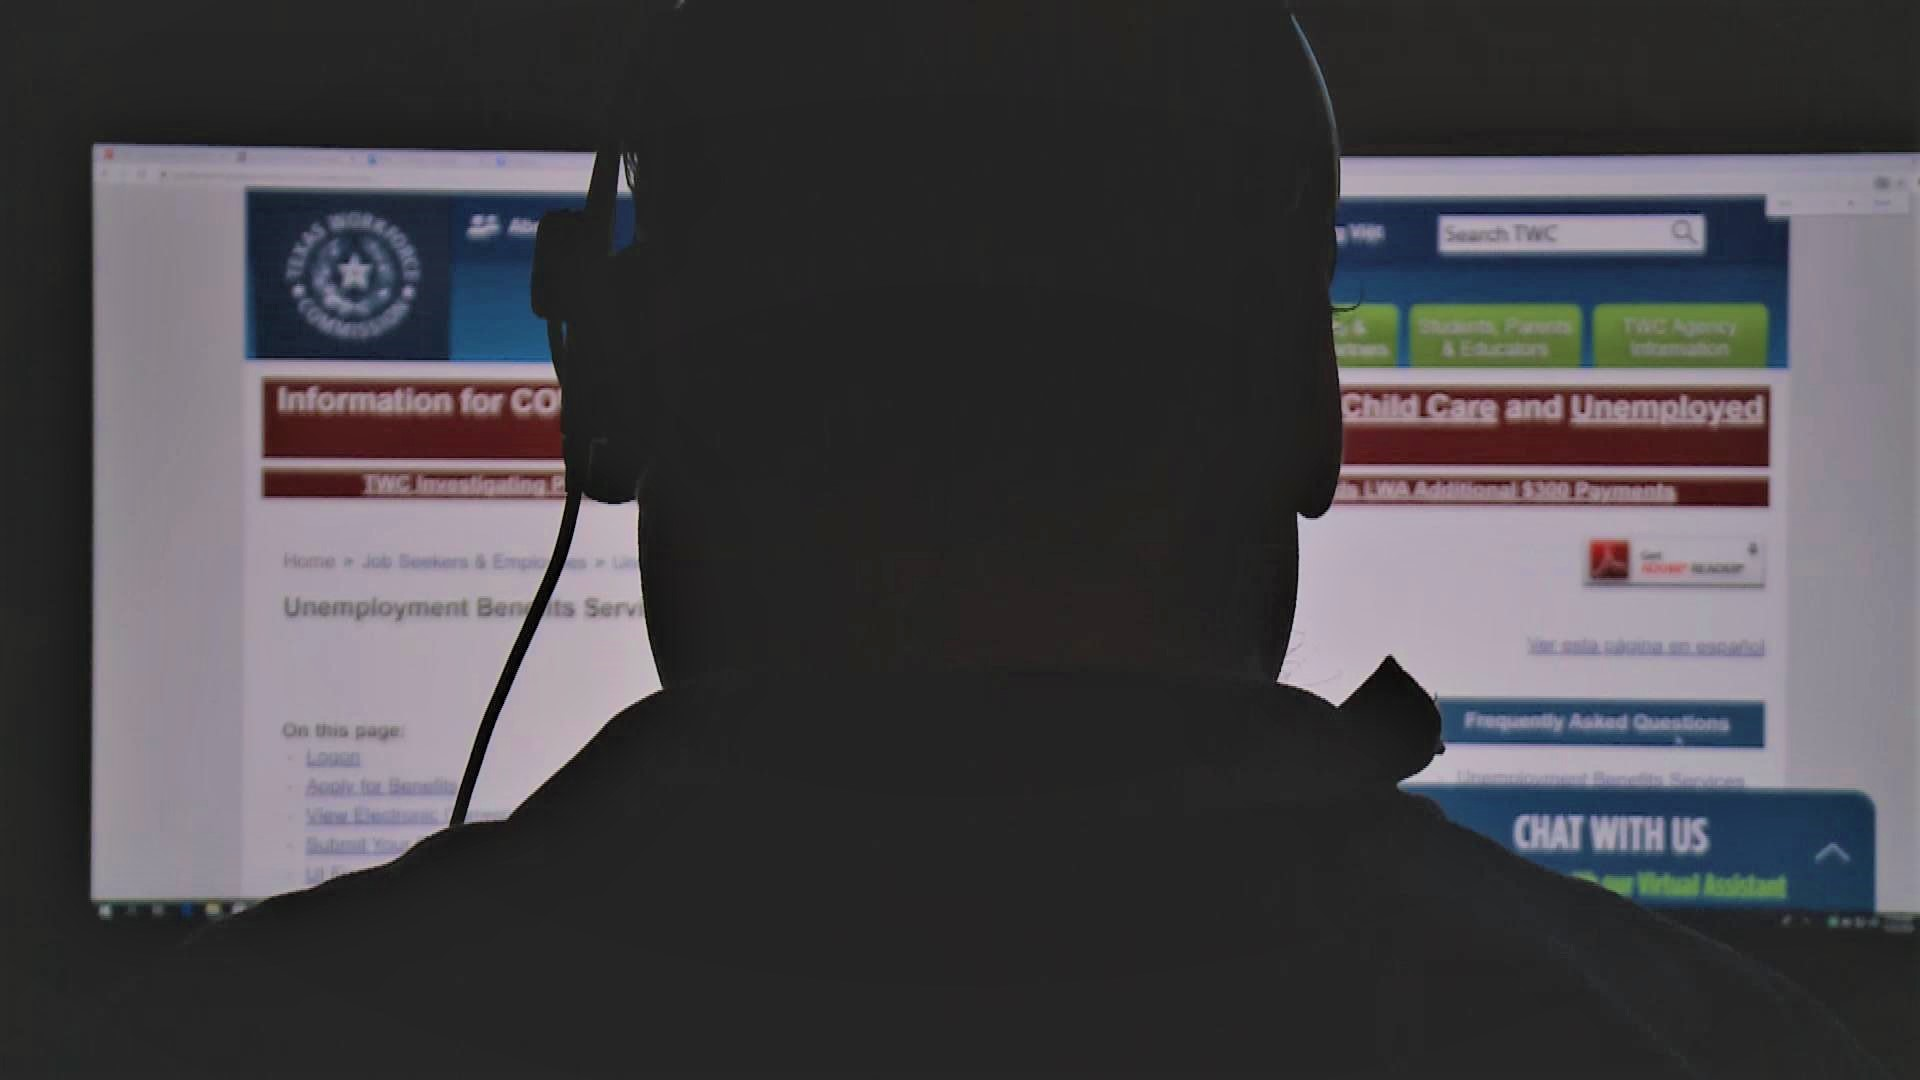 The TWC contracted more than 1,500 new call takers in April when the agency executed contracts with a maximum approved expenditure limit of $15 million. One of those contract workers told KXAN they're still not able to access claimant accounts to help Texans when they call with problems with their unemployment benefits. (KXAN Photo/Ben Friberg)